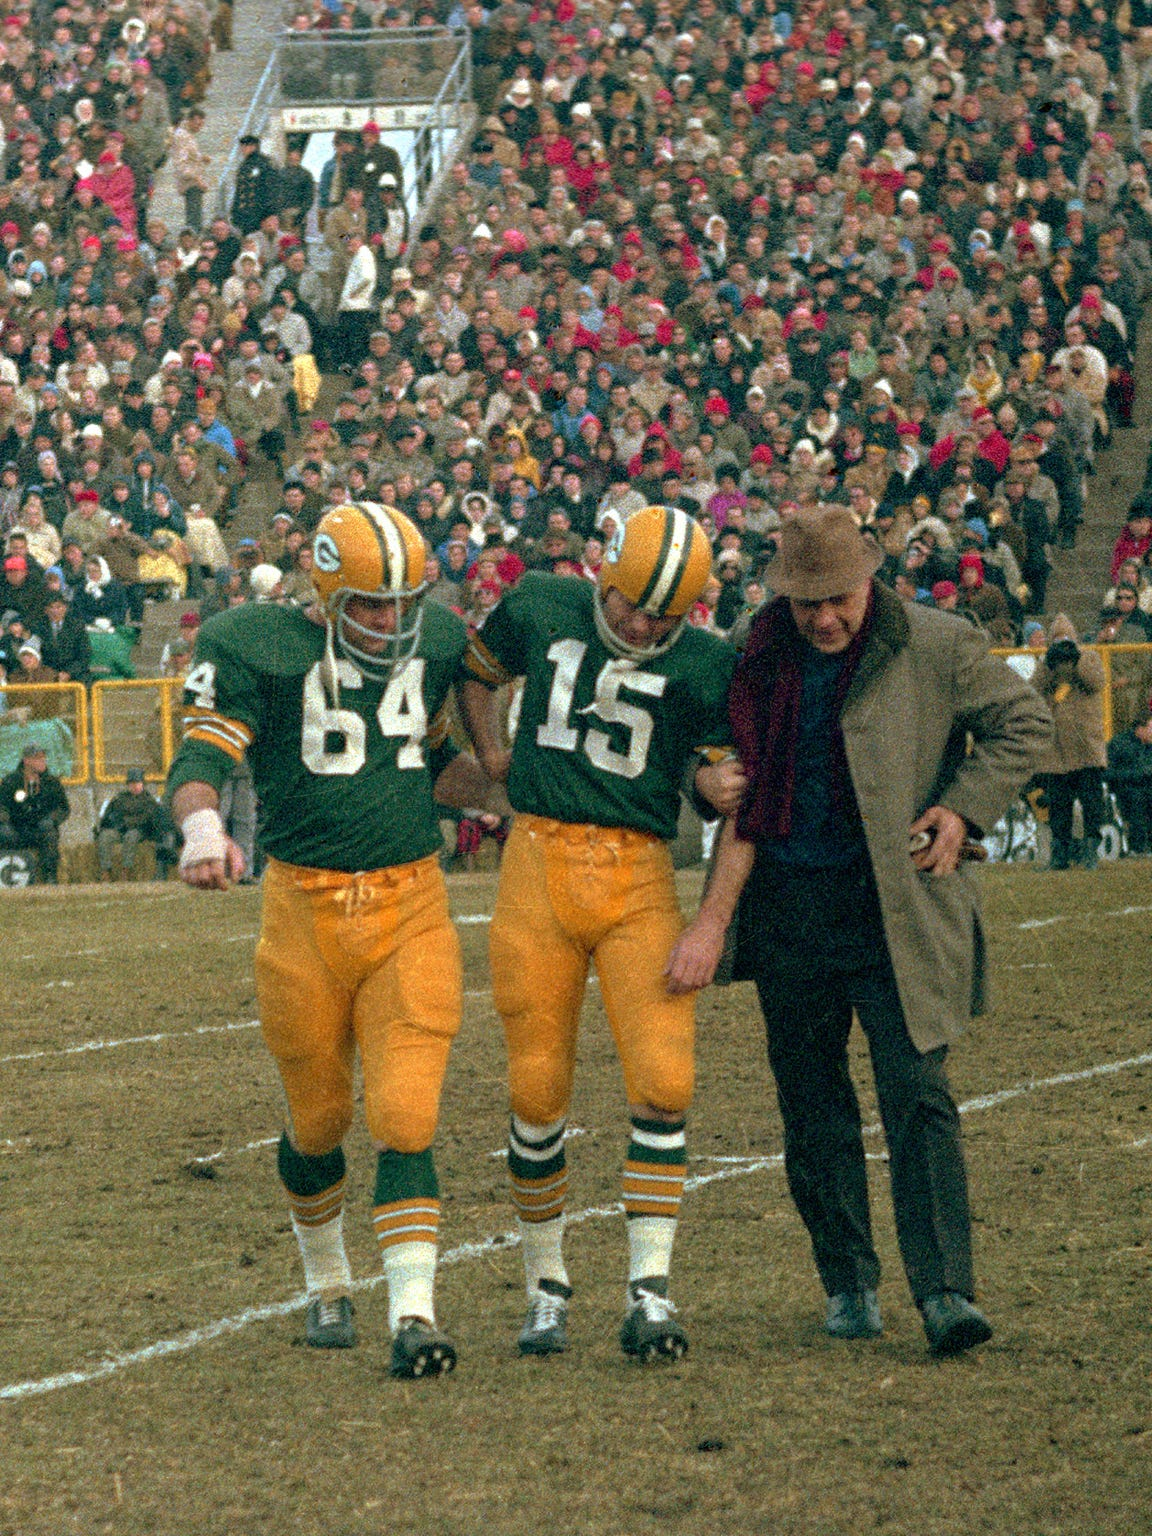 Green Bay Packers quarterback Bart Starr (15) is helped off the field by guard Jerry Kramer (64) and Dr. James Nellen after injuring his ribs on Green Bay's first play from scrimmage in a 13-10 victory over the Baltimore Colts in overtime in the Western Division championship game at Lambeau Field on Dec. 26, 1965. Starr had completed a pass to end Bill Anderson, who fumbled. Colts linebacker Don Shinnick recovered and returned it 25 yards for a touchdown. Starr was hurt while trying to stop one of Shinnick's blockers.